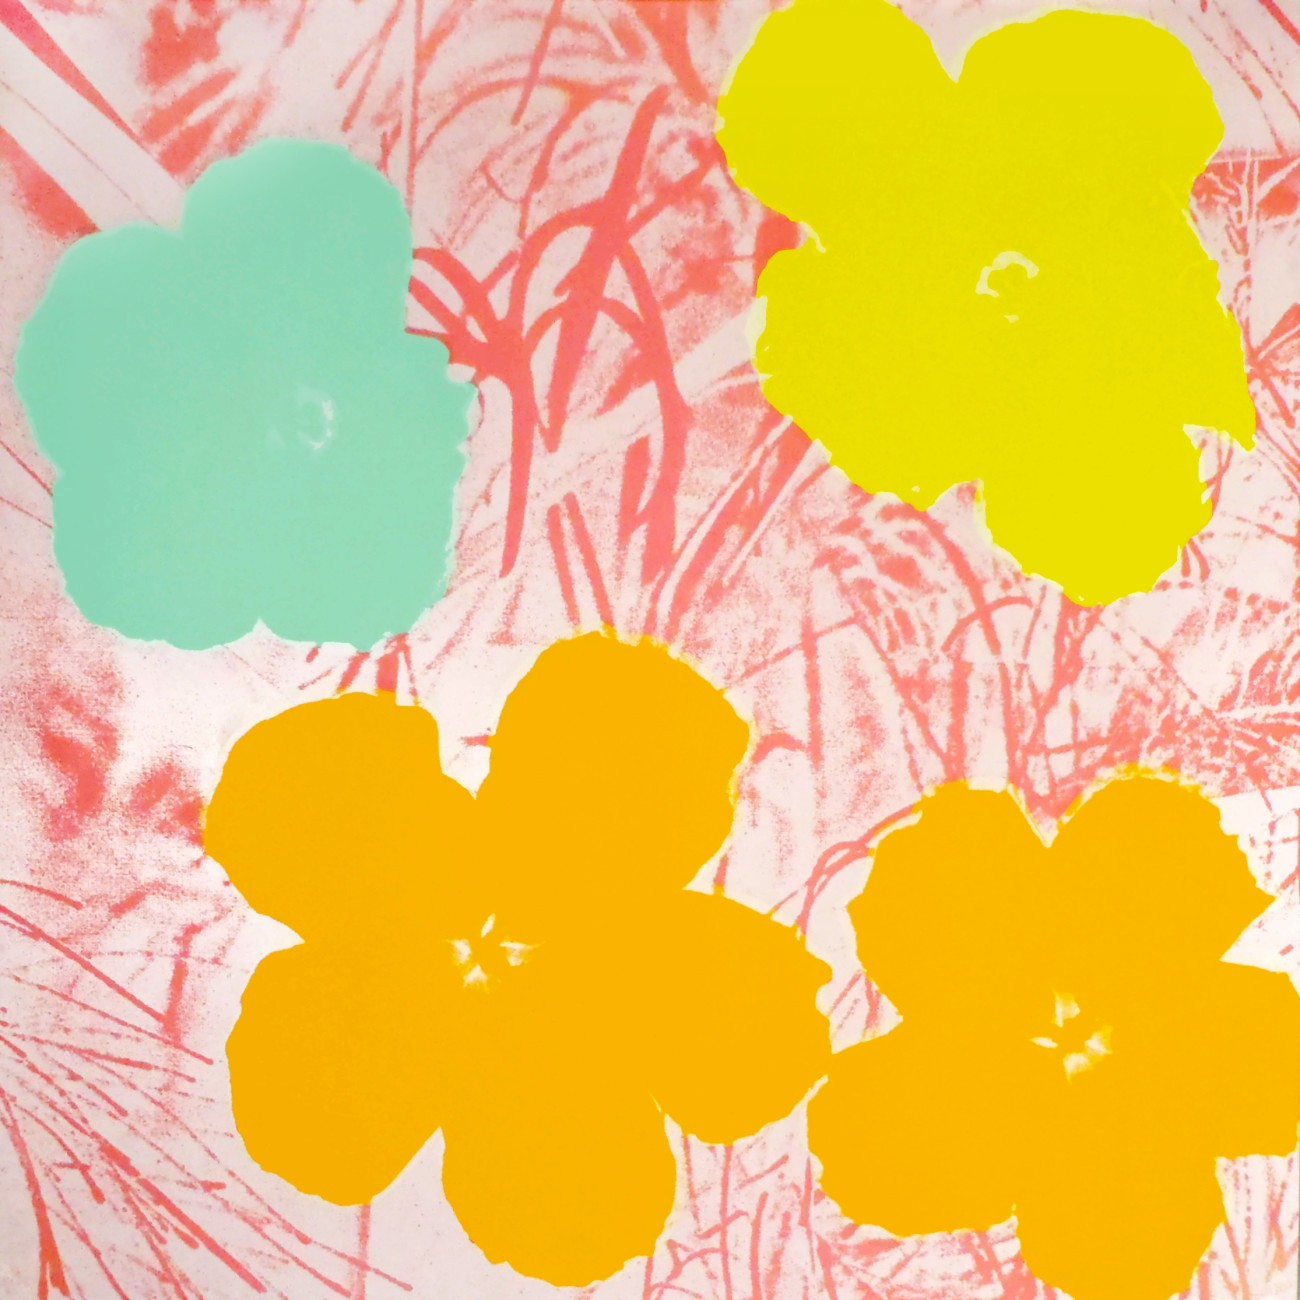 Andy Warhol | Flowers 70 | 1970 | Image of Artists' work.